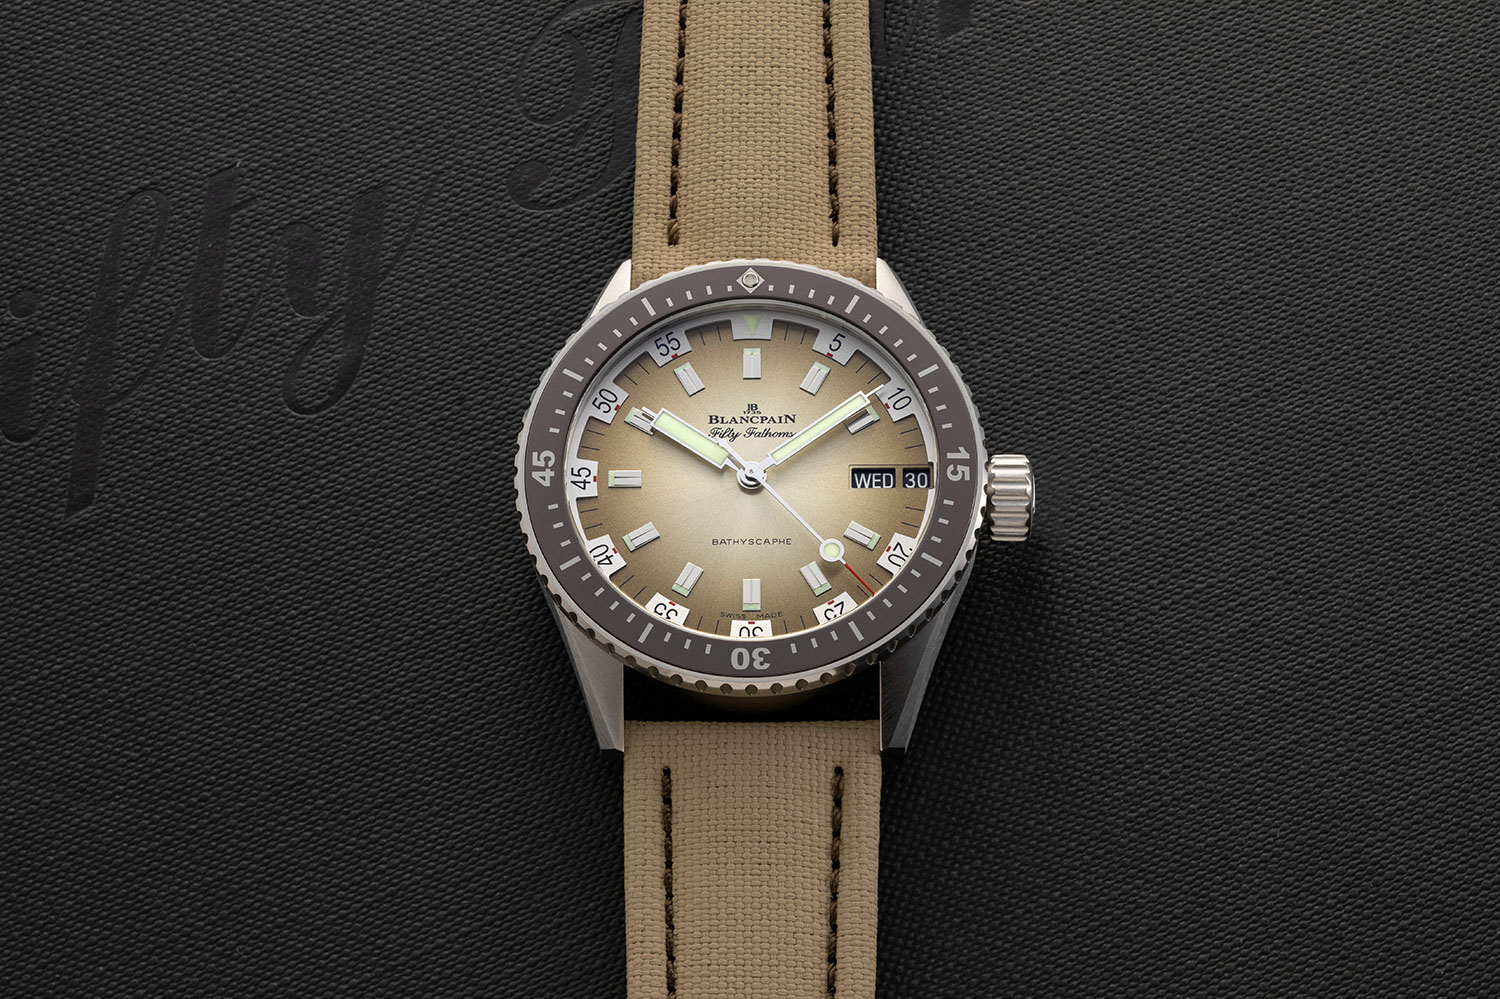 The Blancpain Fifty Fathoms Bathyscaphe Day Date 70s with a Desert Color Dial (©Revolution)